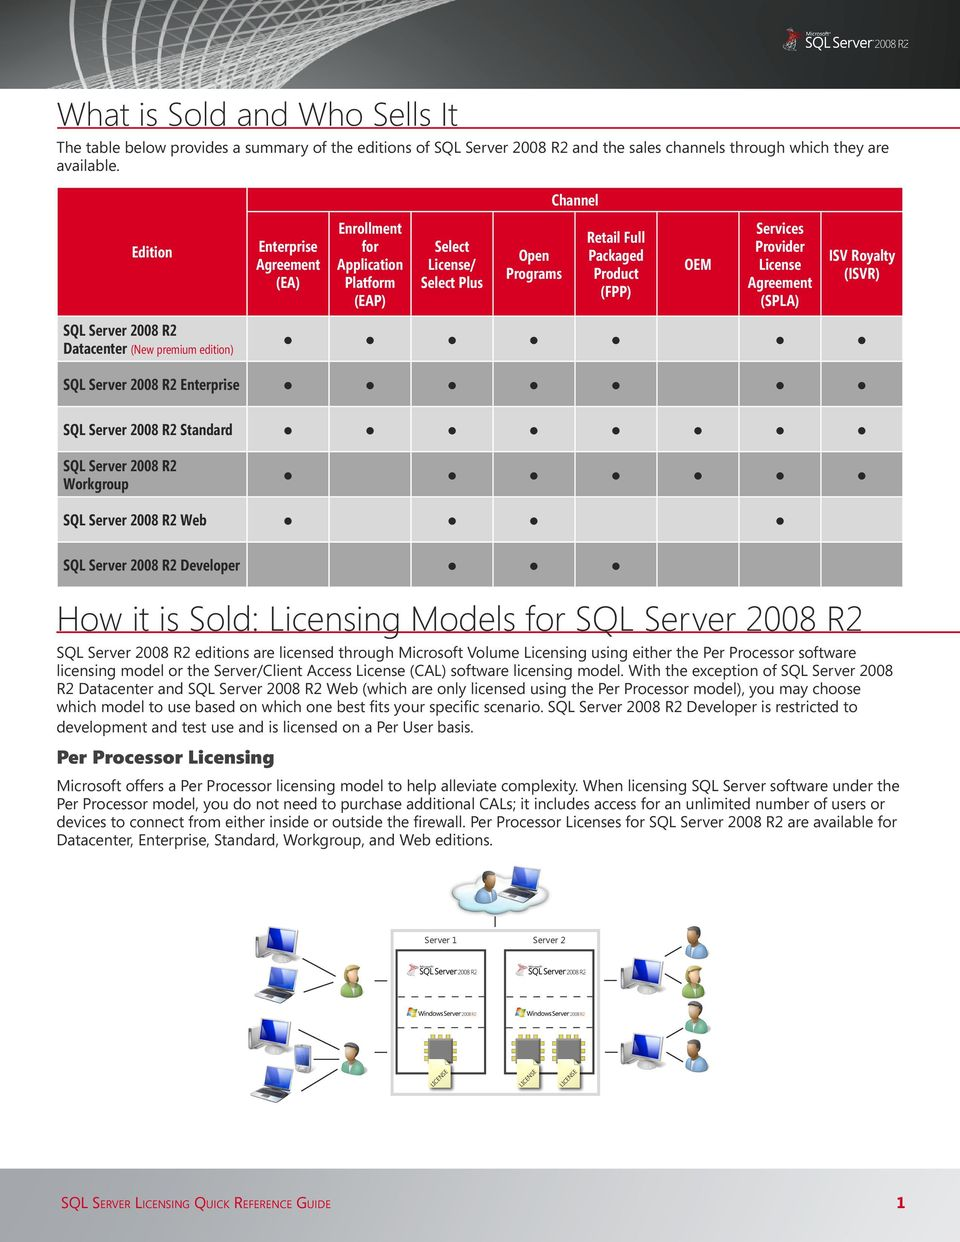 ISV Royalty (ISVR) 2008 R2 Datacenter (New premium edition) 2008 R2 Enterprise 2008 R2 Standard 2008 R2 Workgroup 2008 R2 Web 2008 R2 Developer How it is Sold: Licensing Models for 2008 R2 2008 R2